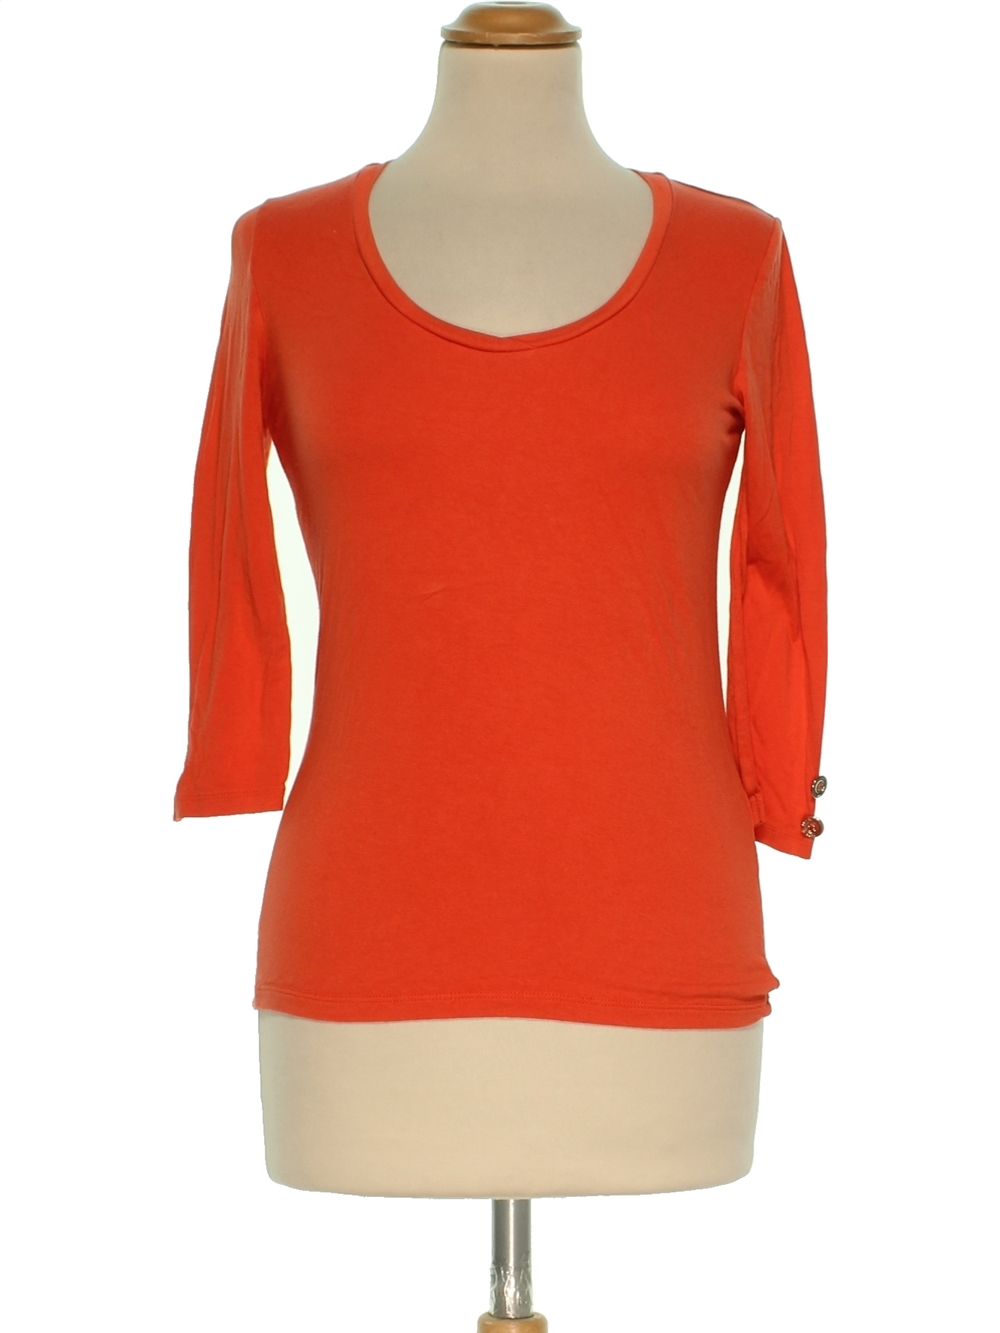 Femme Breal Top Patrice Breal Patrice Top xodeCB